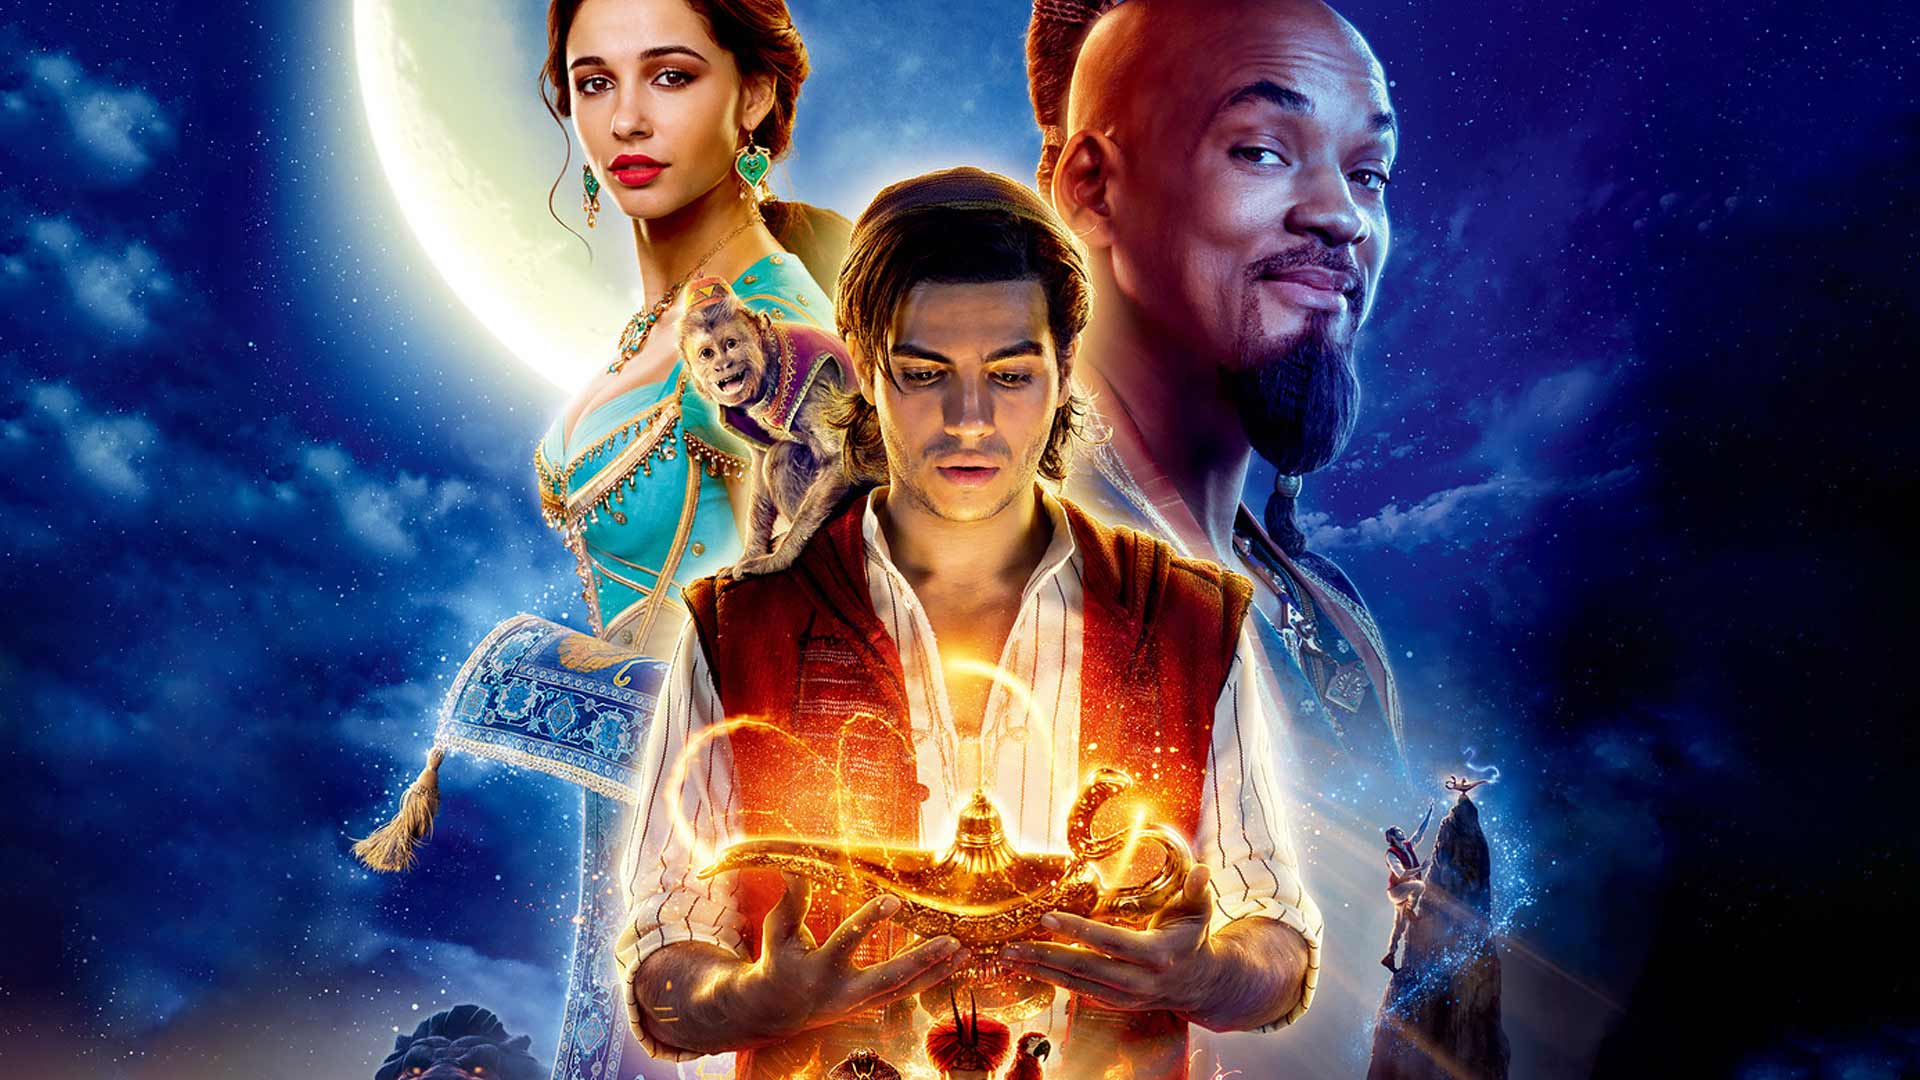 Aladdin ending explained sequel 2 genie